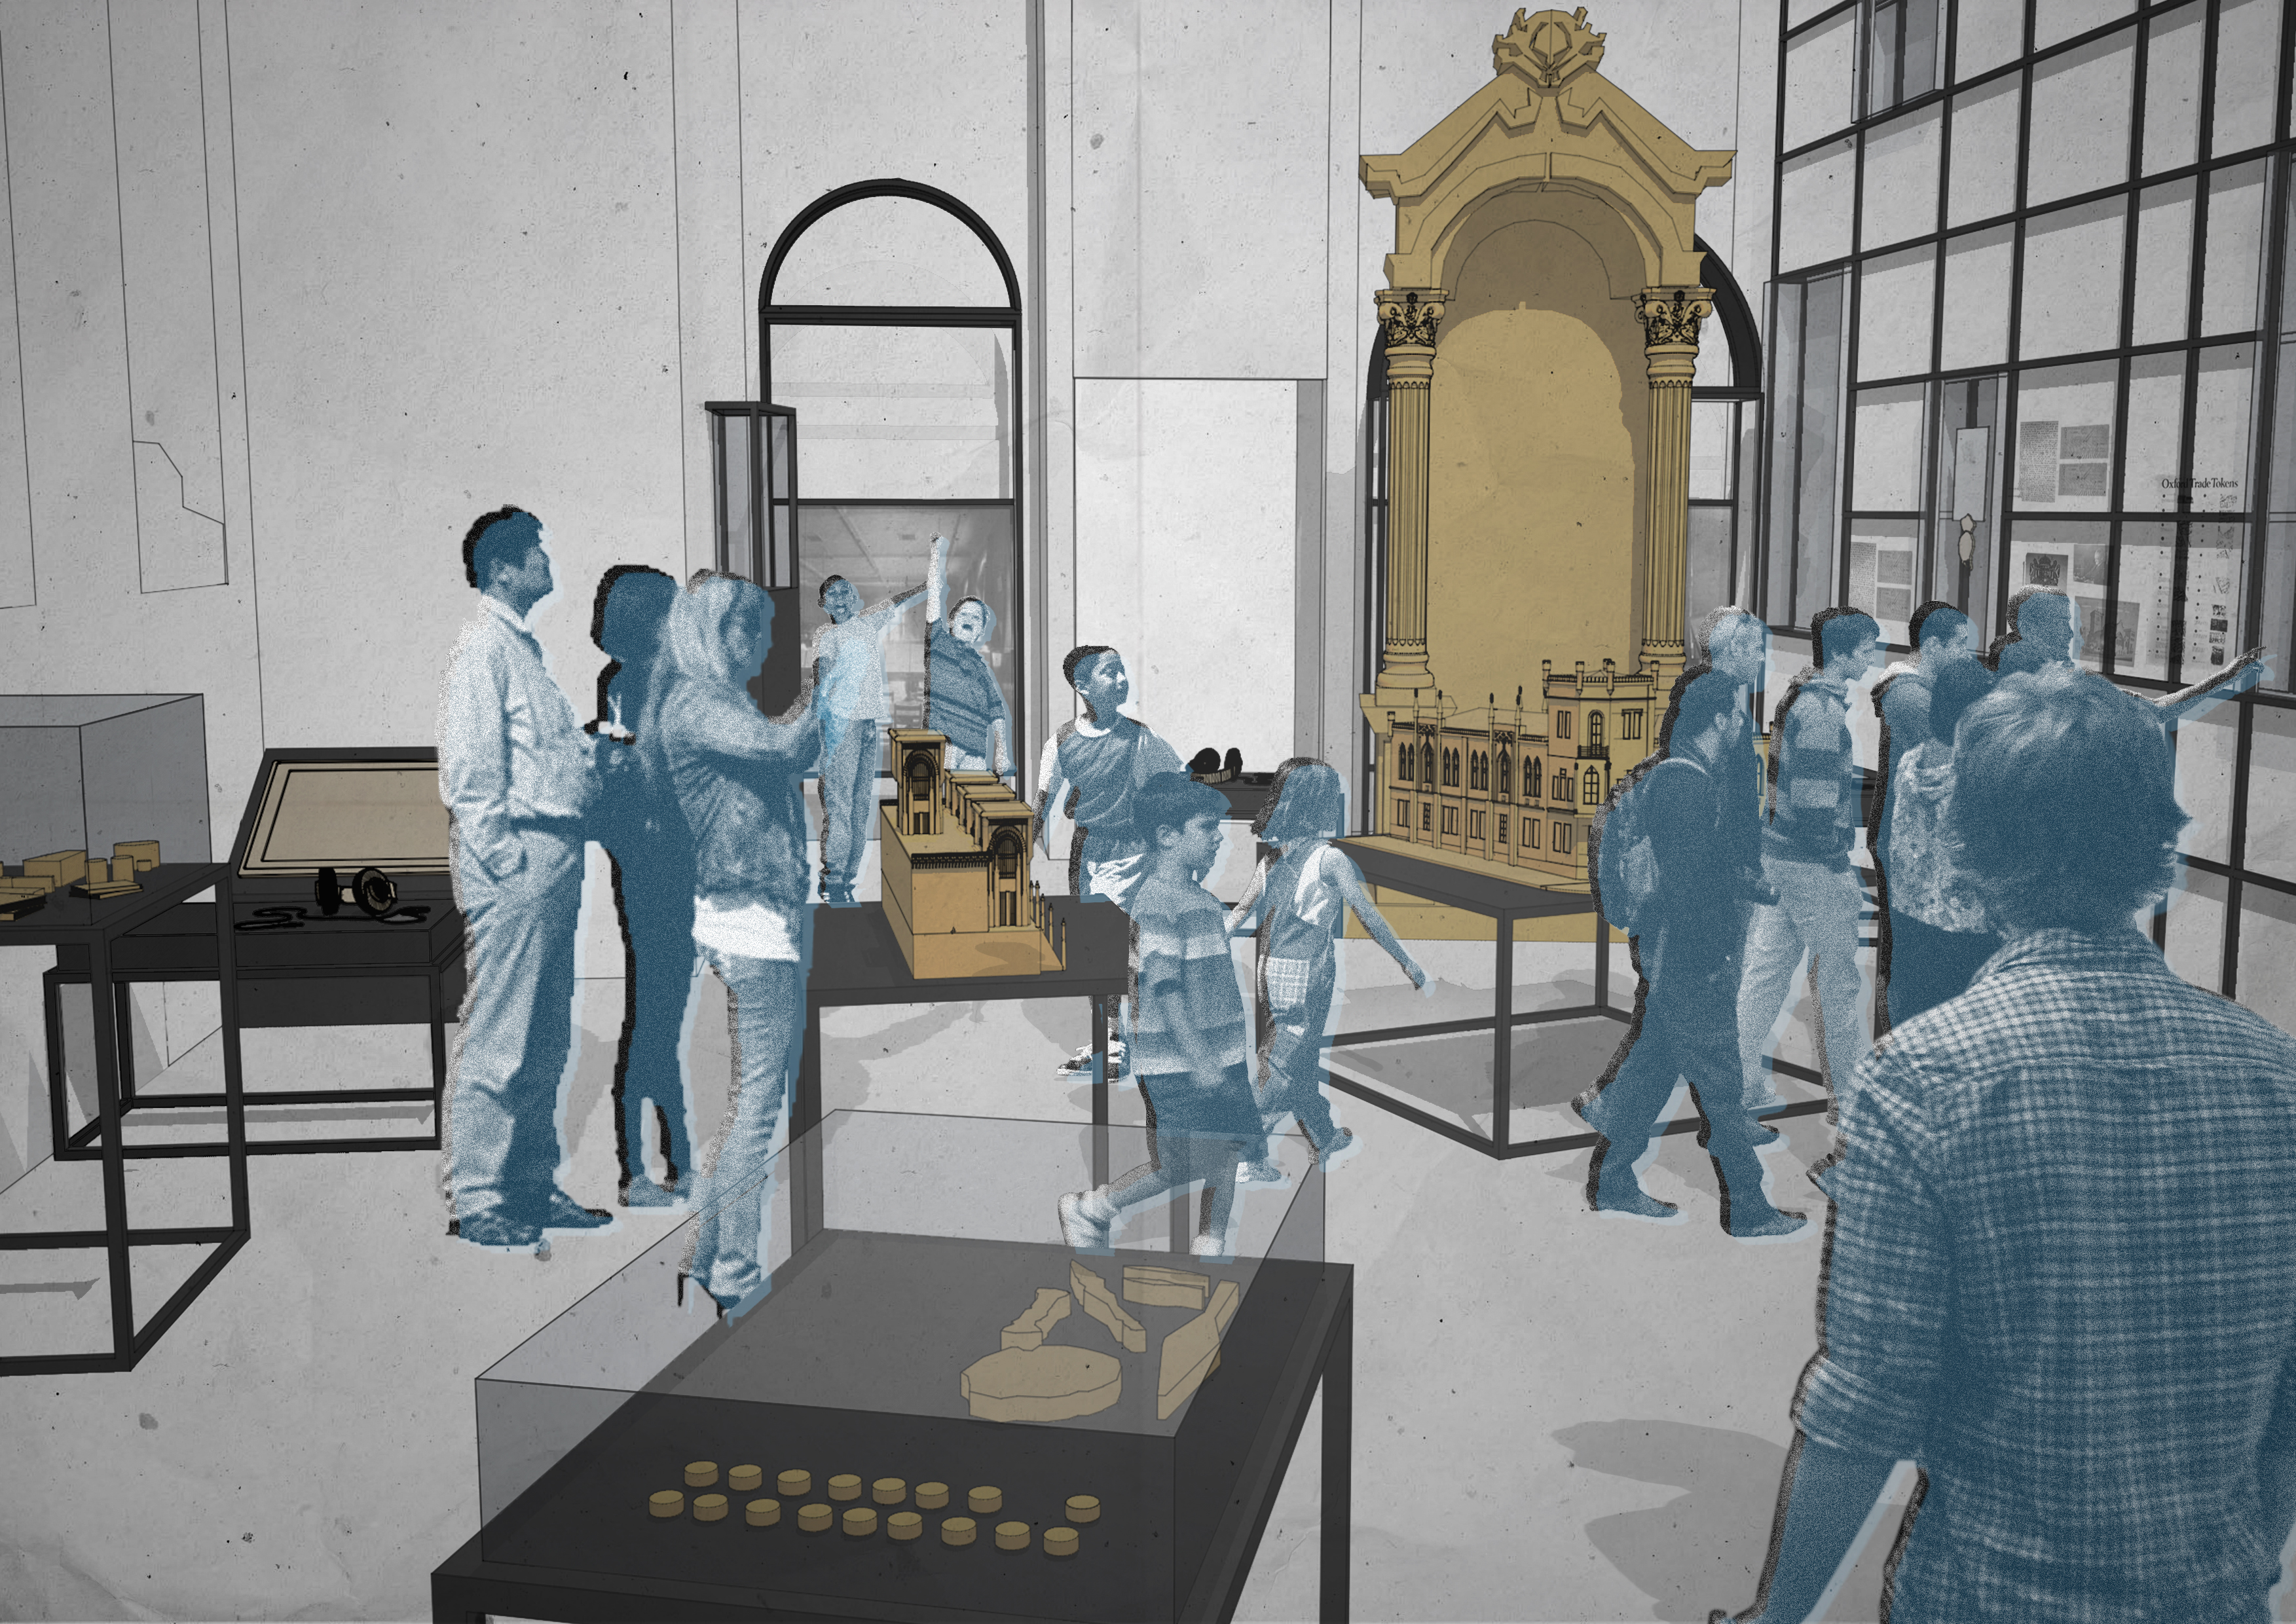 An artist's impression of the new Museum of Oxford galleries featuring people looking at objects.